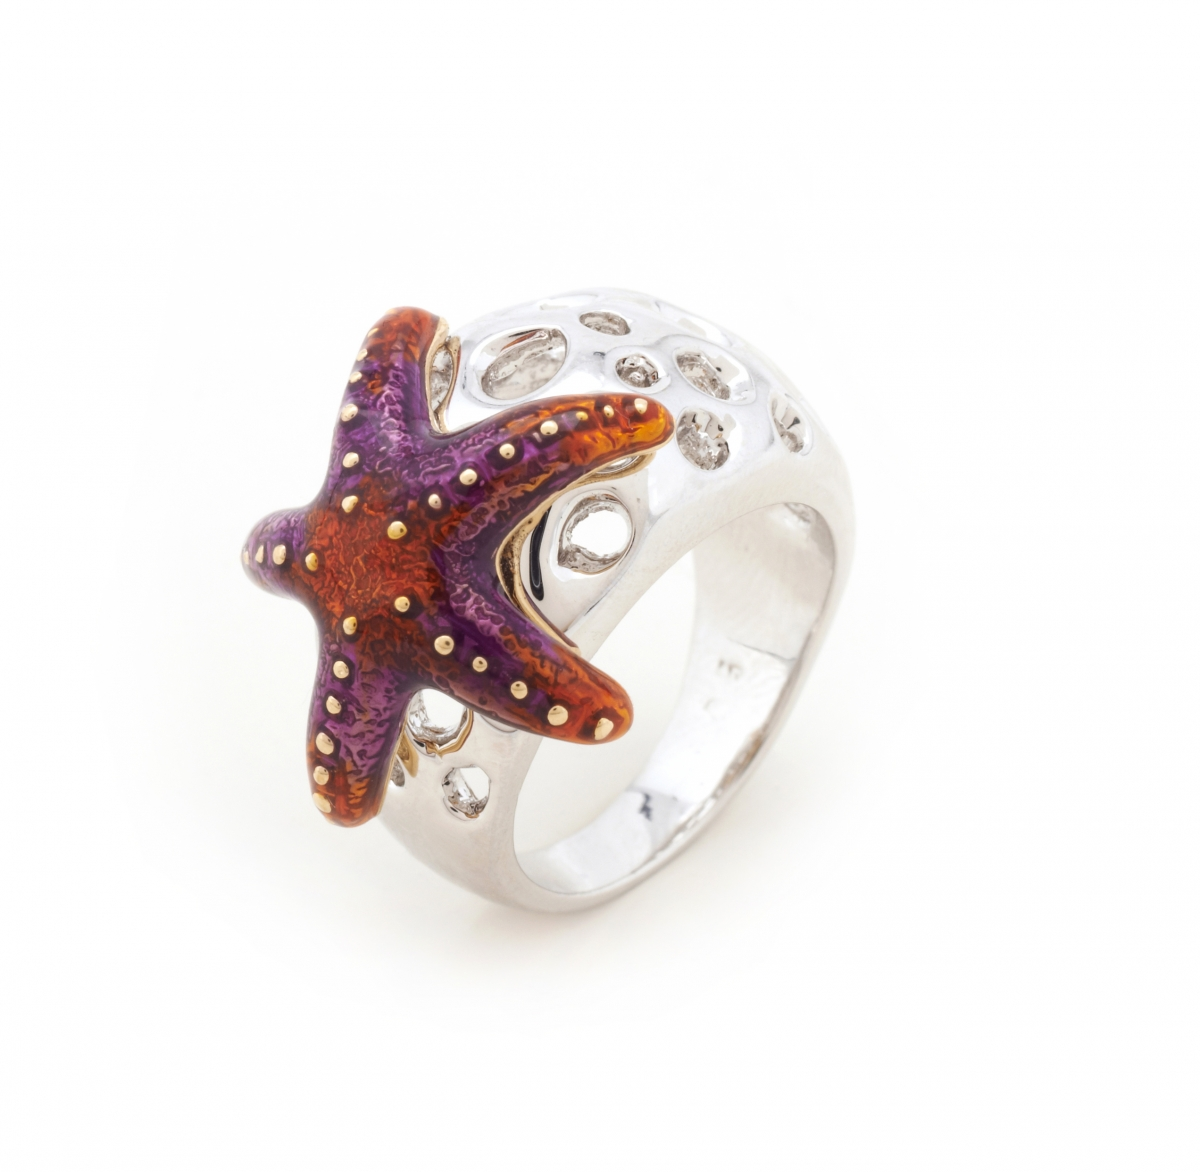 Aquatic Starfish Ring - Small Size Only